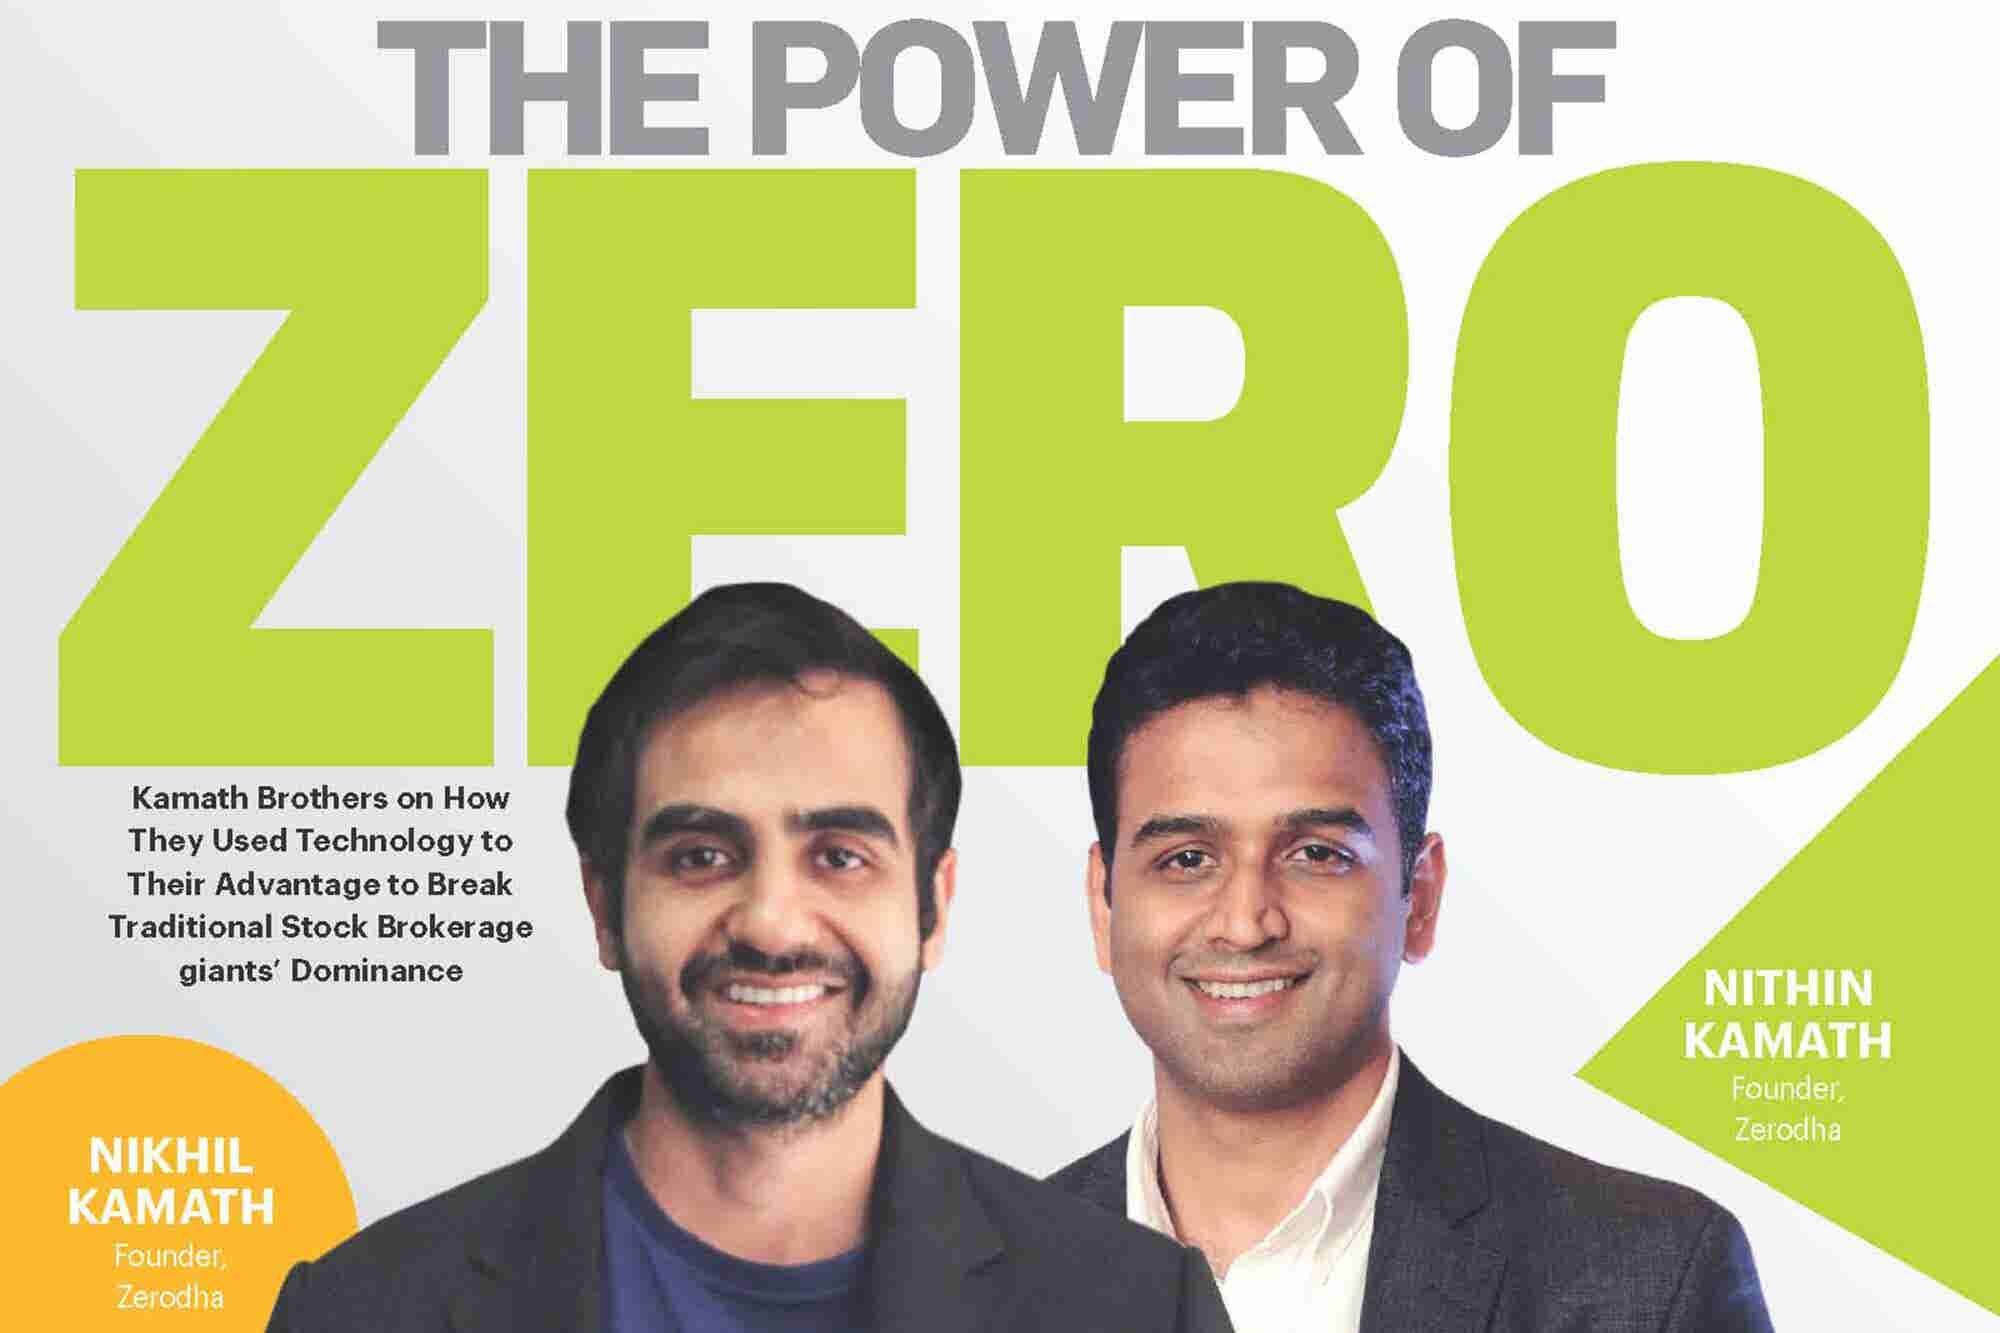 The Kamath Brothers on How They Used the Power of Zero to Become India's No 1 Stock Brokering Platform